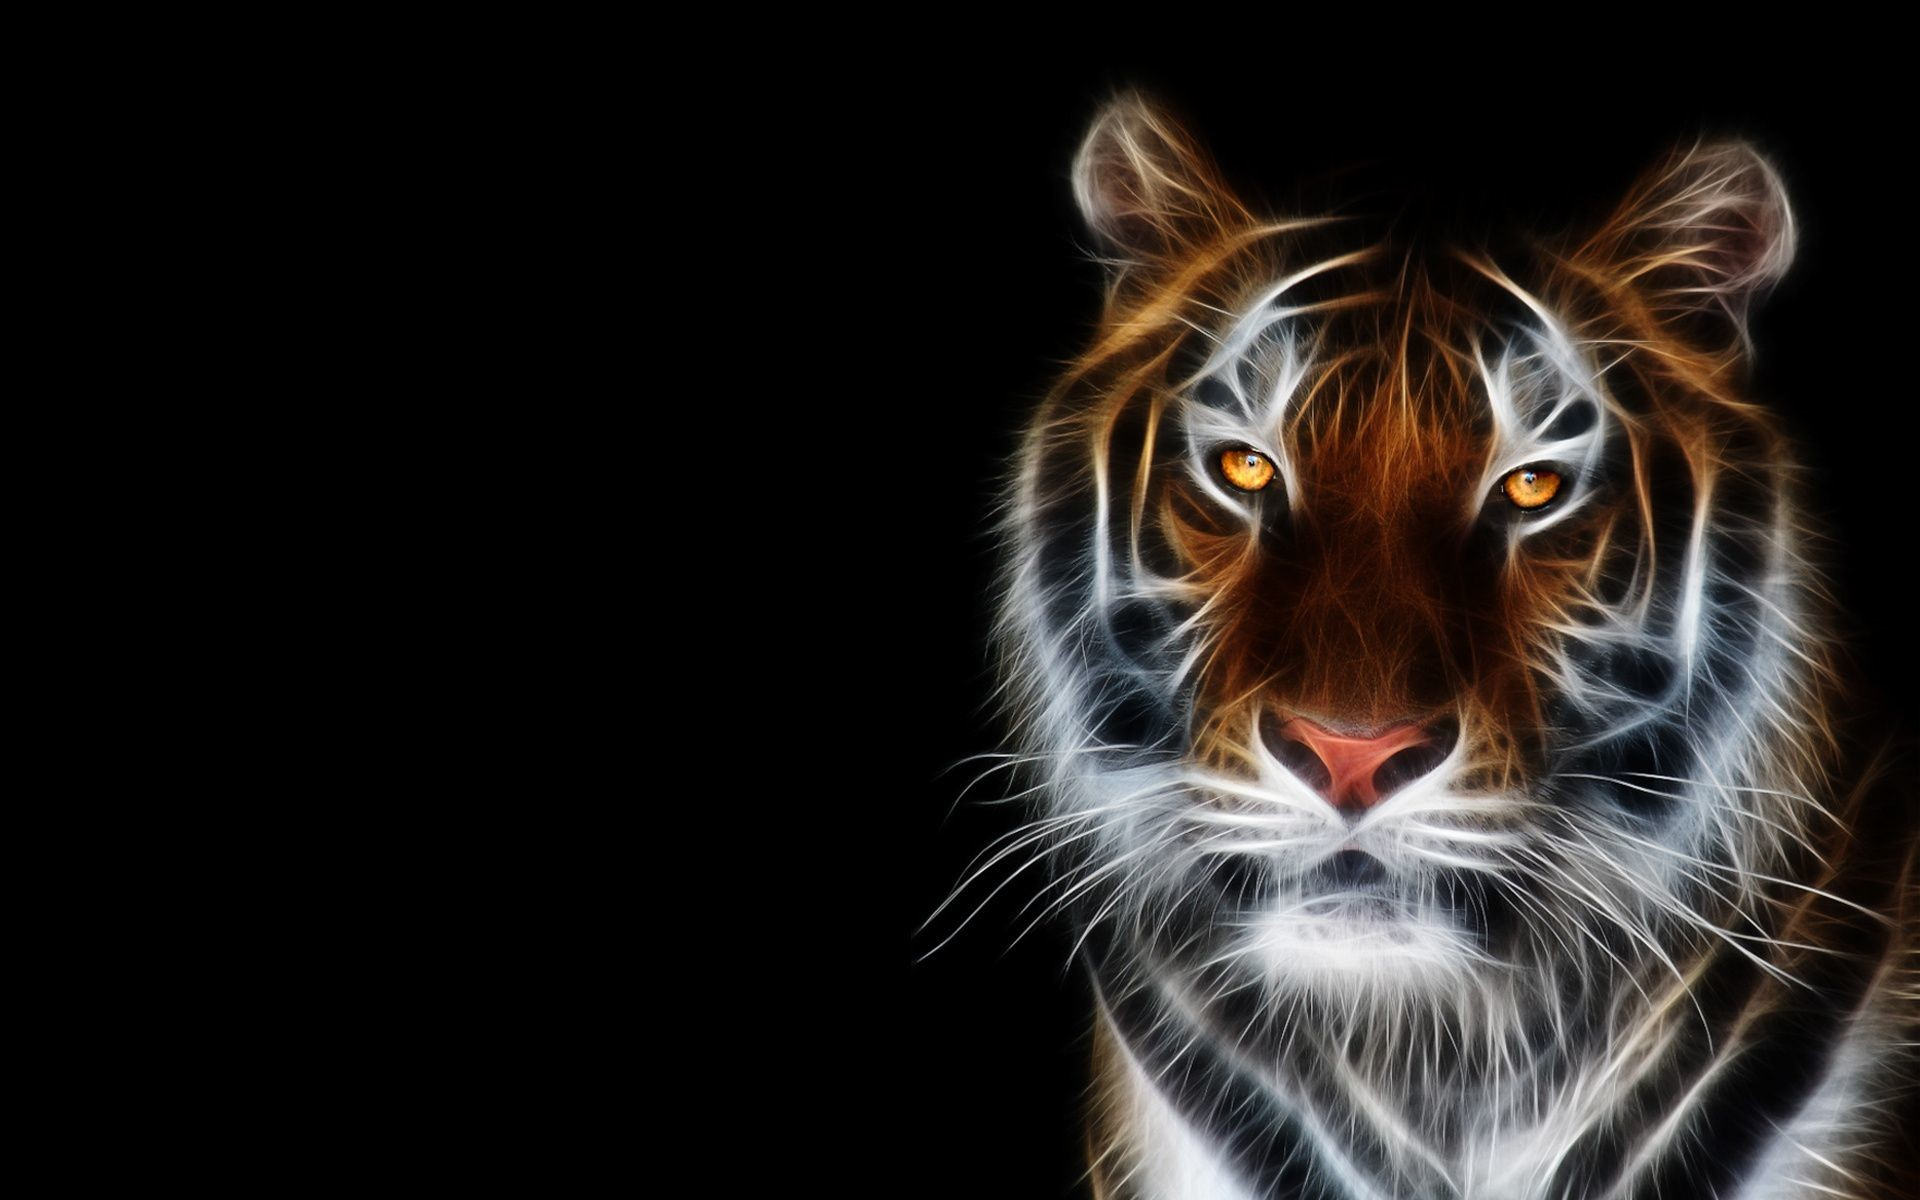 Res: 1920x1200, 3D Animals on Pinterest | Animal Wallpaper, Unique Animals and Cat .